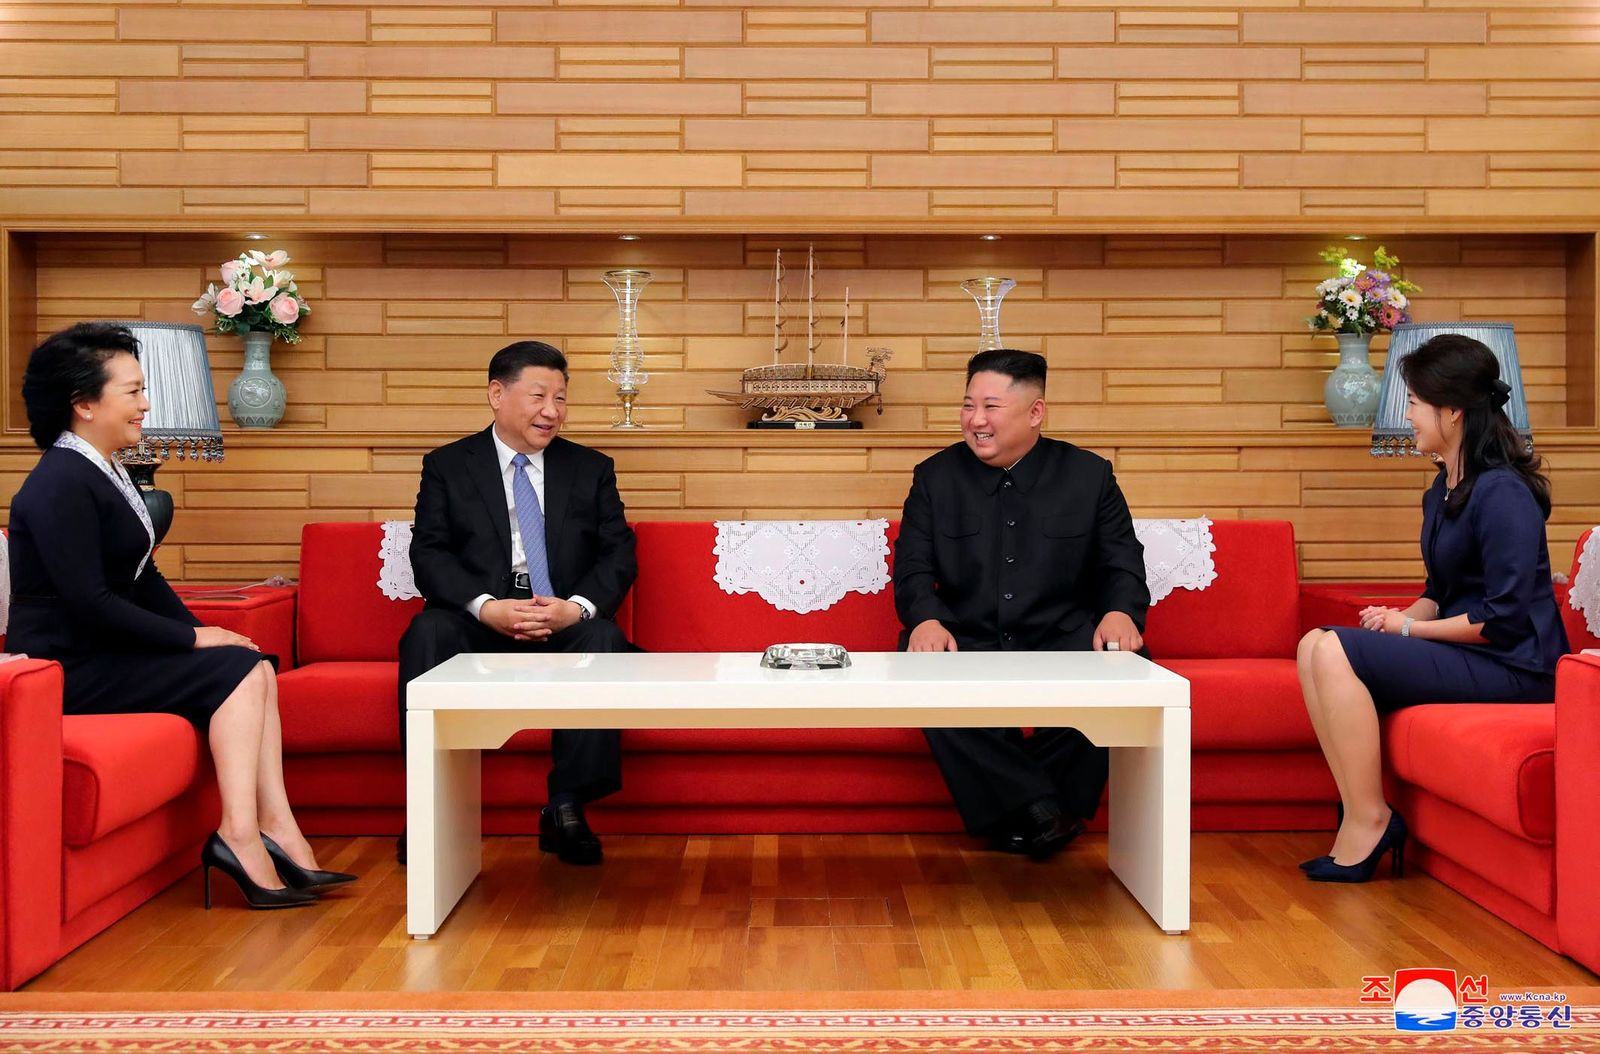 "In this Thursday, June 20, 2019, photo provided by the North Korean government, North Korean leader Kim Jong Un, center right, and his wife Ri Sol Ju, right, meet Chinese President Xi Jinping, center left, and his wife Peng Liyuan at Kumsusan guest house in Pyongyang, North Korea. The content of this image is as provided and cannot be independently verified. Korean language watermark on image as provided by source reads: ""KCNA"" which is the abbreviation for Korean Central News Agency. (Korean Central News Agency/Korea News Service via AP)"